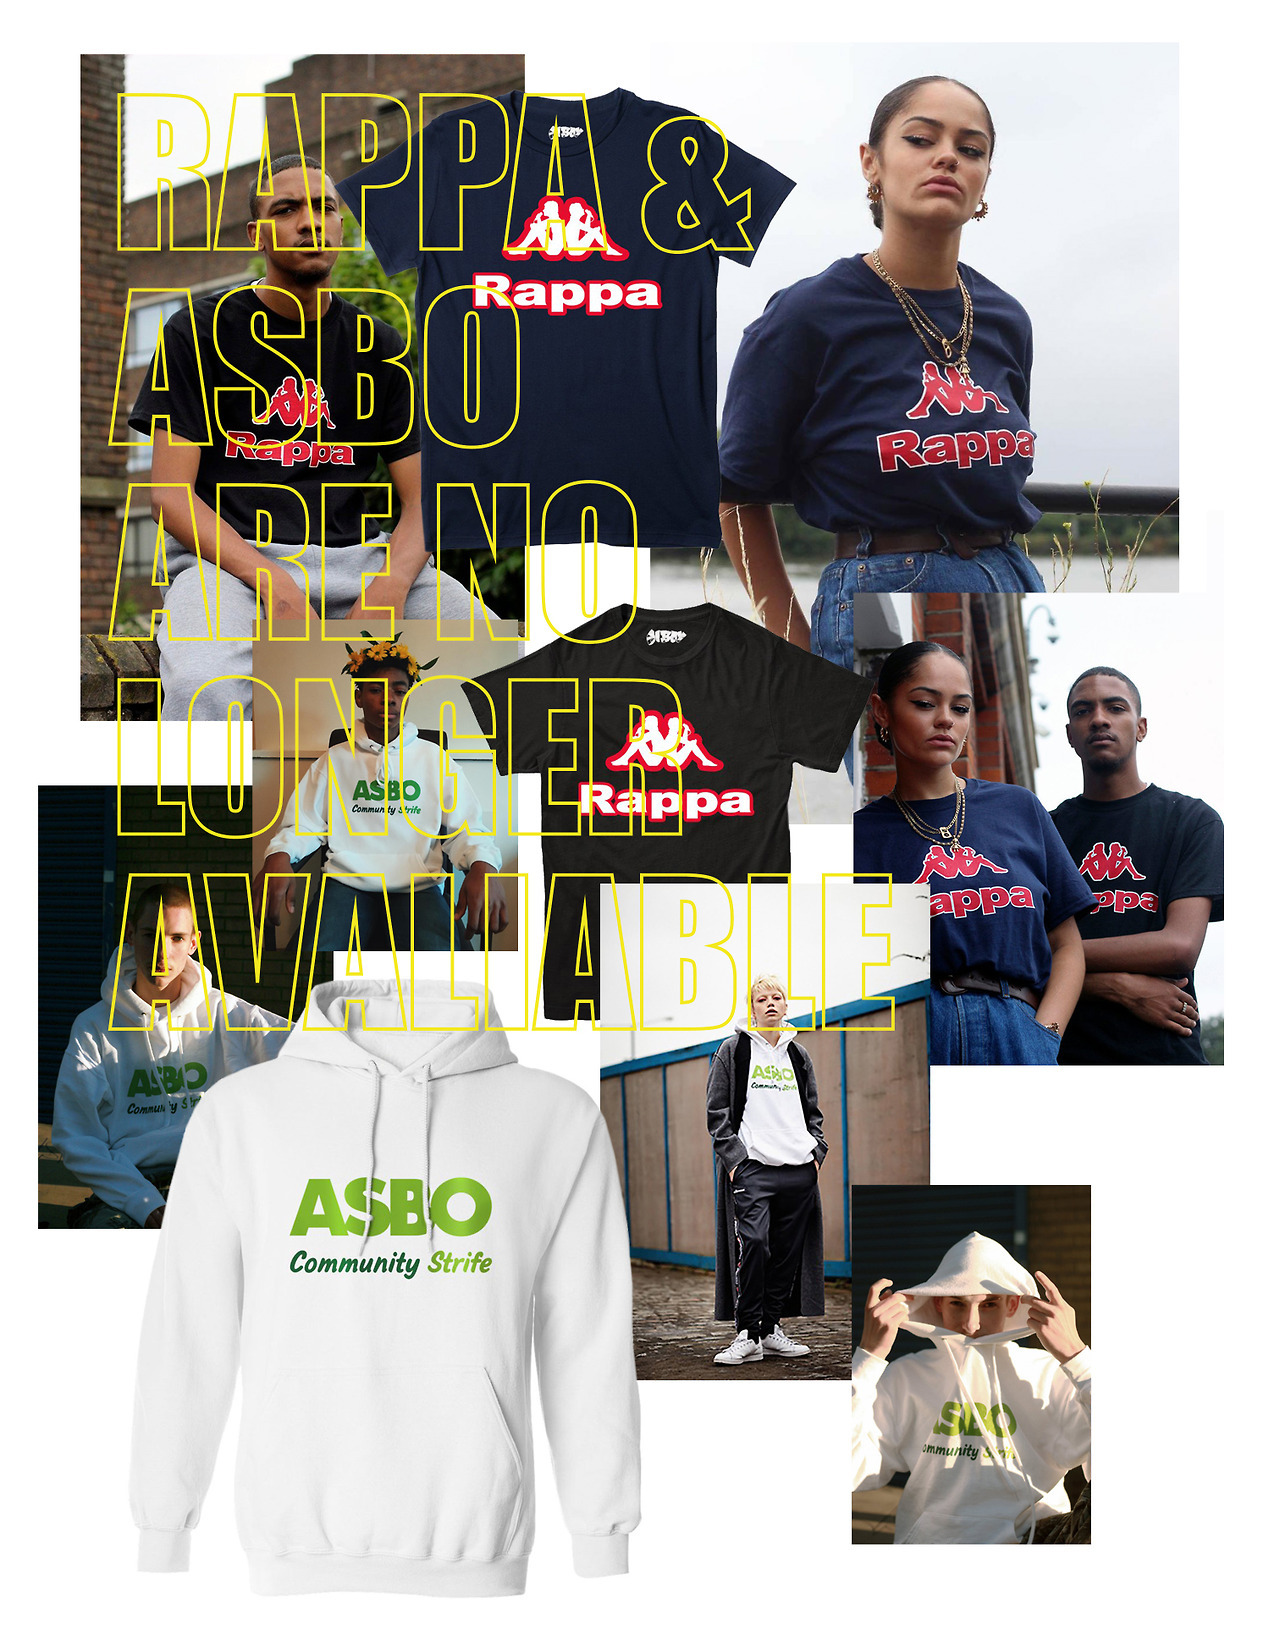 ANOTHER FEW ITEMS SENT TO THE ARCHIVES. RAPPA TEES & ASBO HOODIE HAVE NOW SOLD OUT WITH NO PLANS TO RESTOCK THEM.